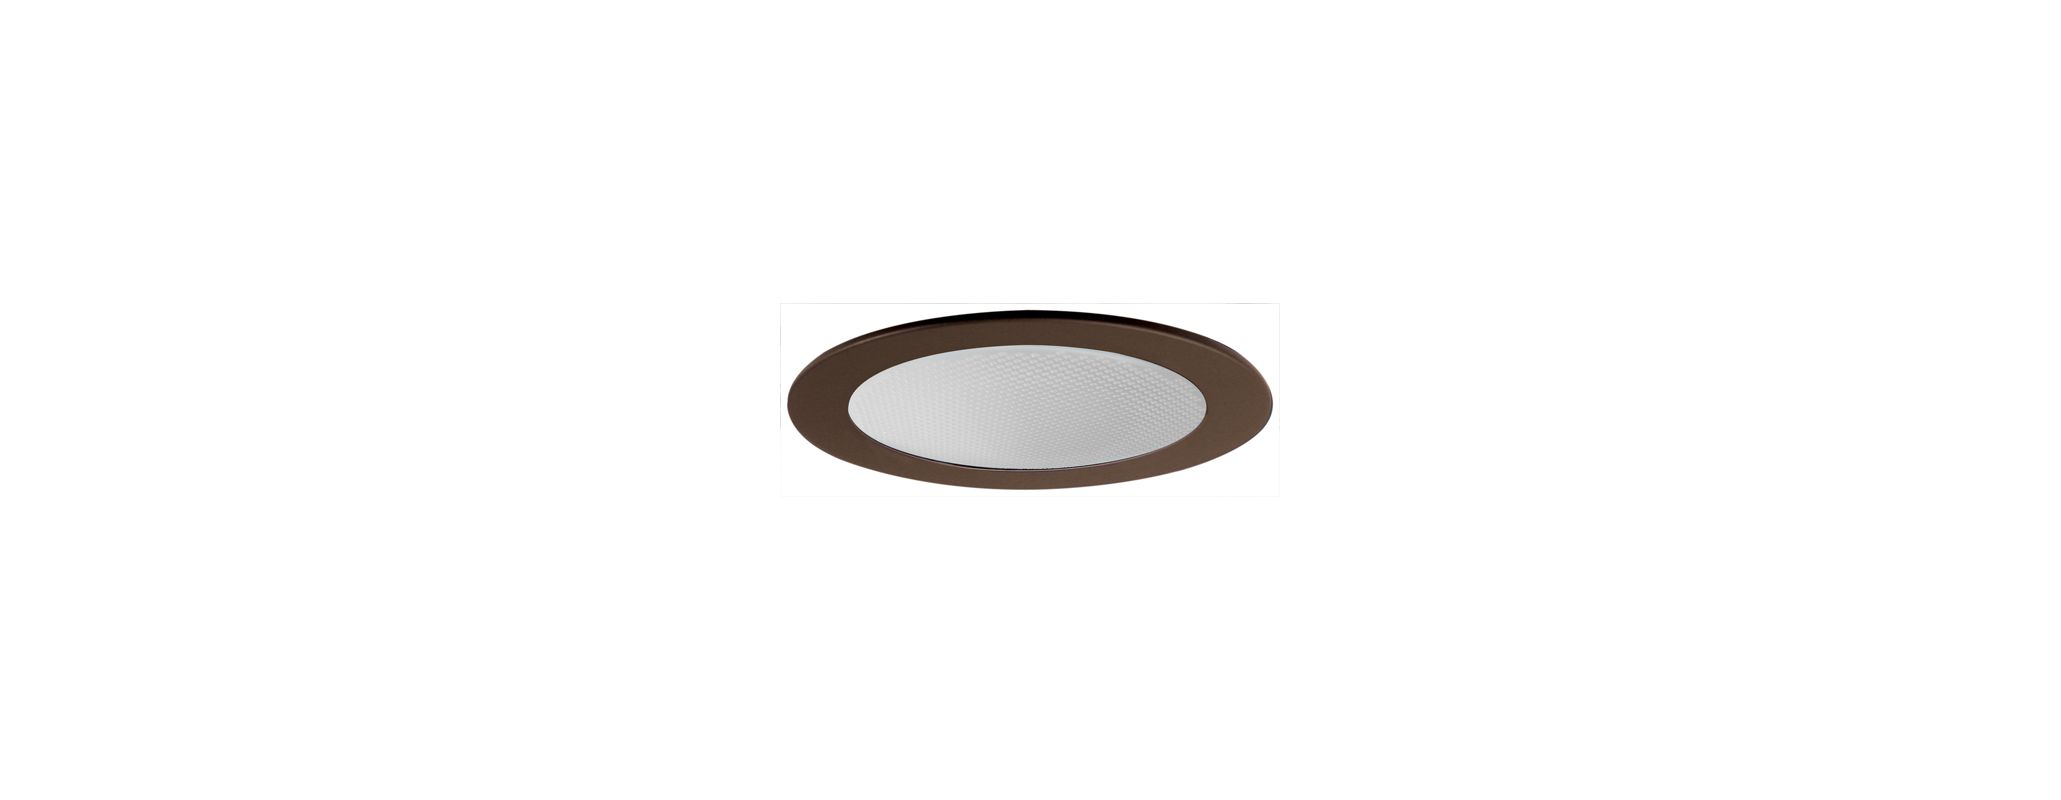 "Elco EL9114 4"" CFL Shower Trim with Albalite Lens and Reflector Bronze"